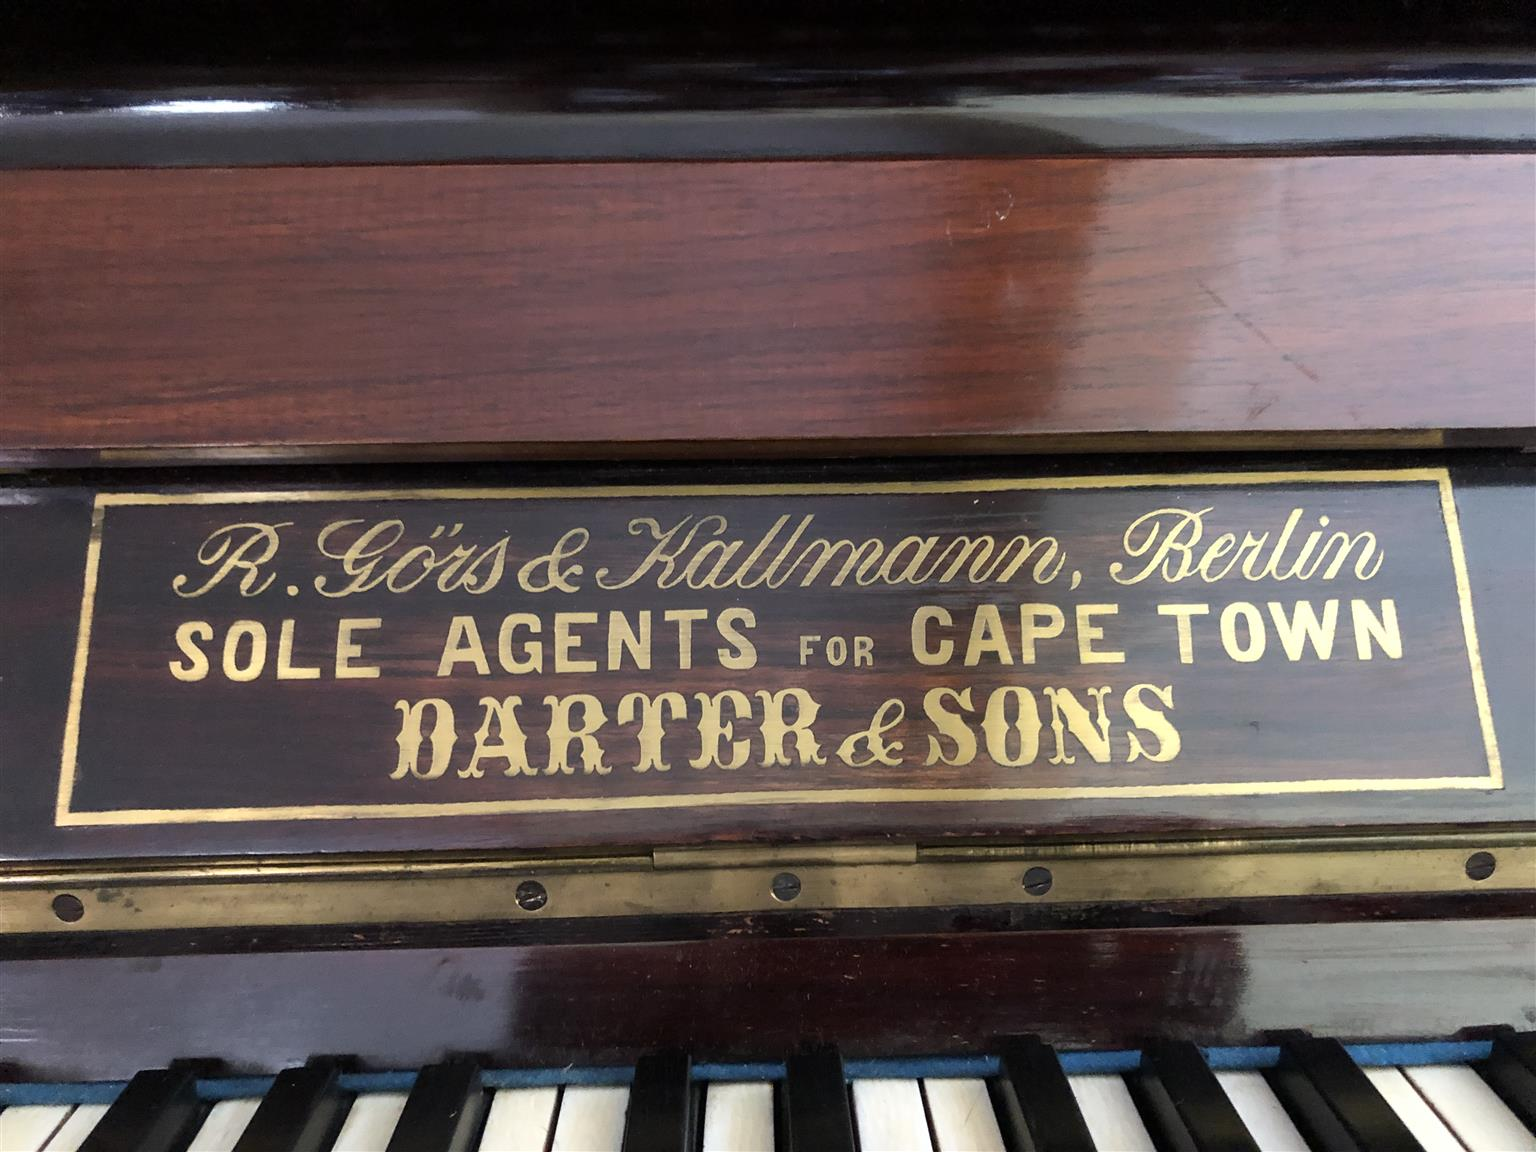 Piano Upright R.Gors & Kallman - Serial no: 21806 date of manufacture 1896